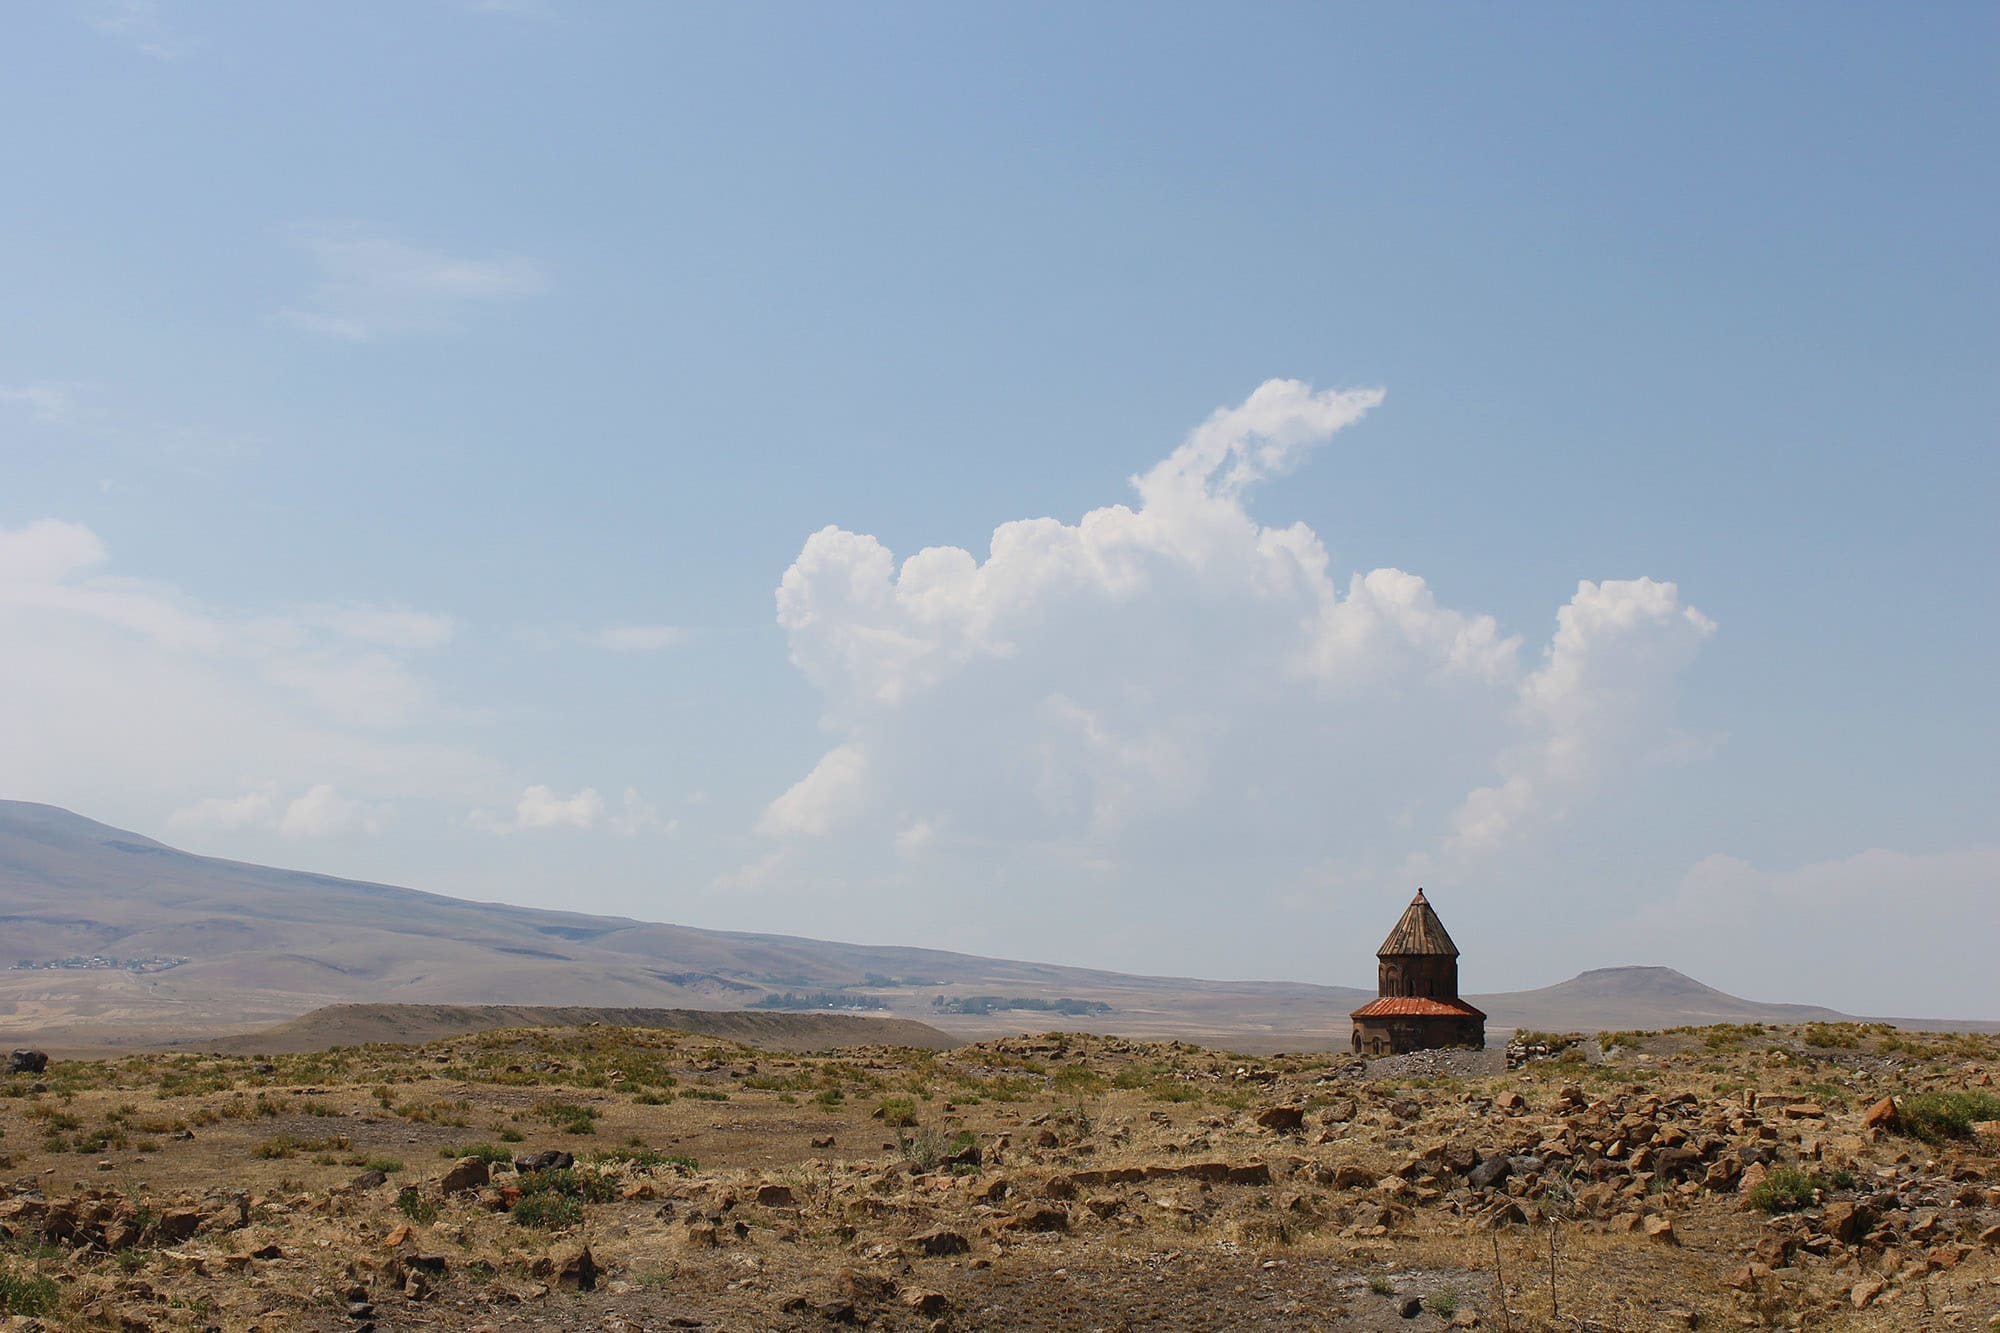 Ani the ancient capital of Armenia